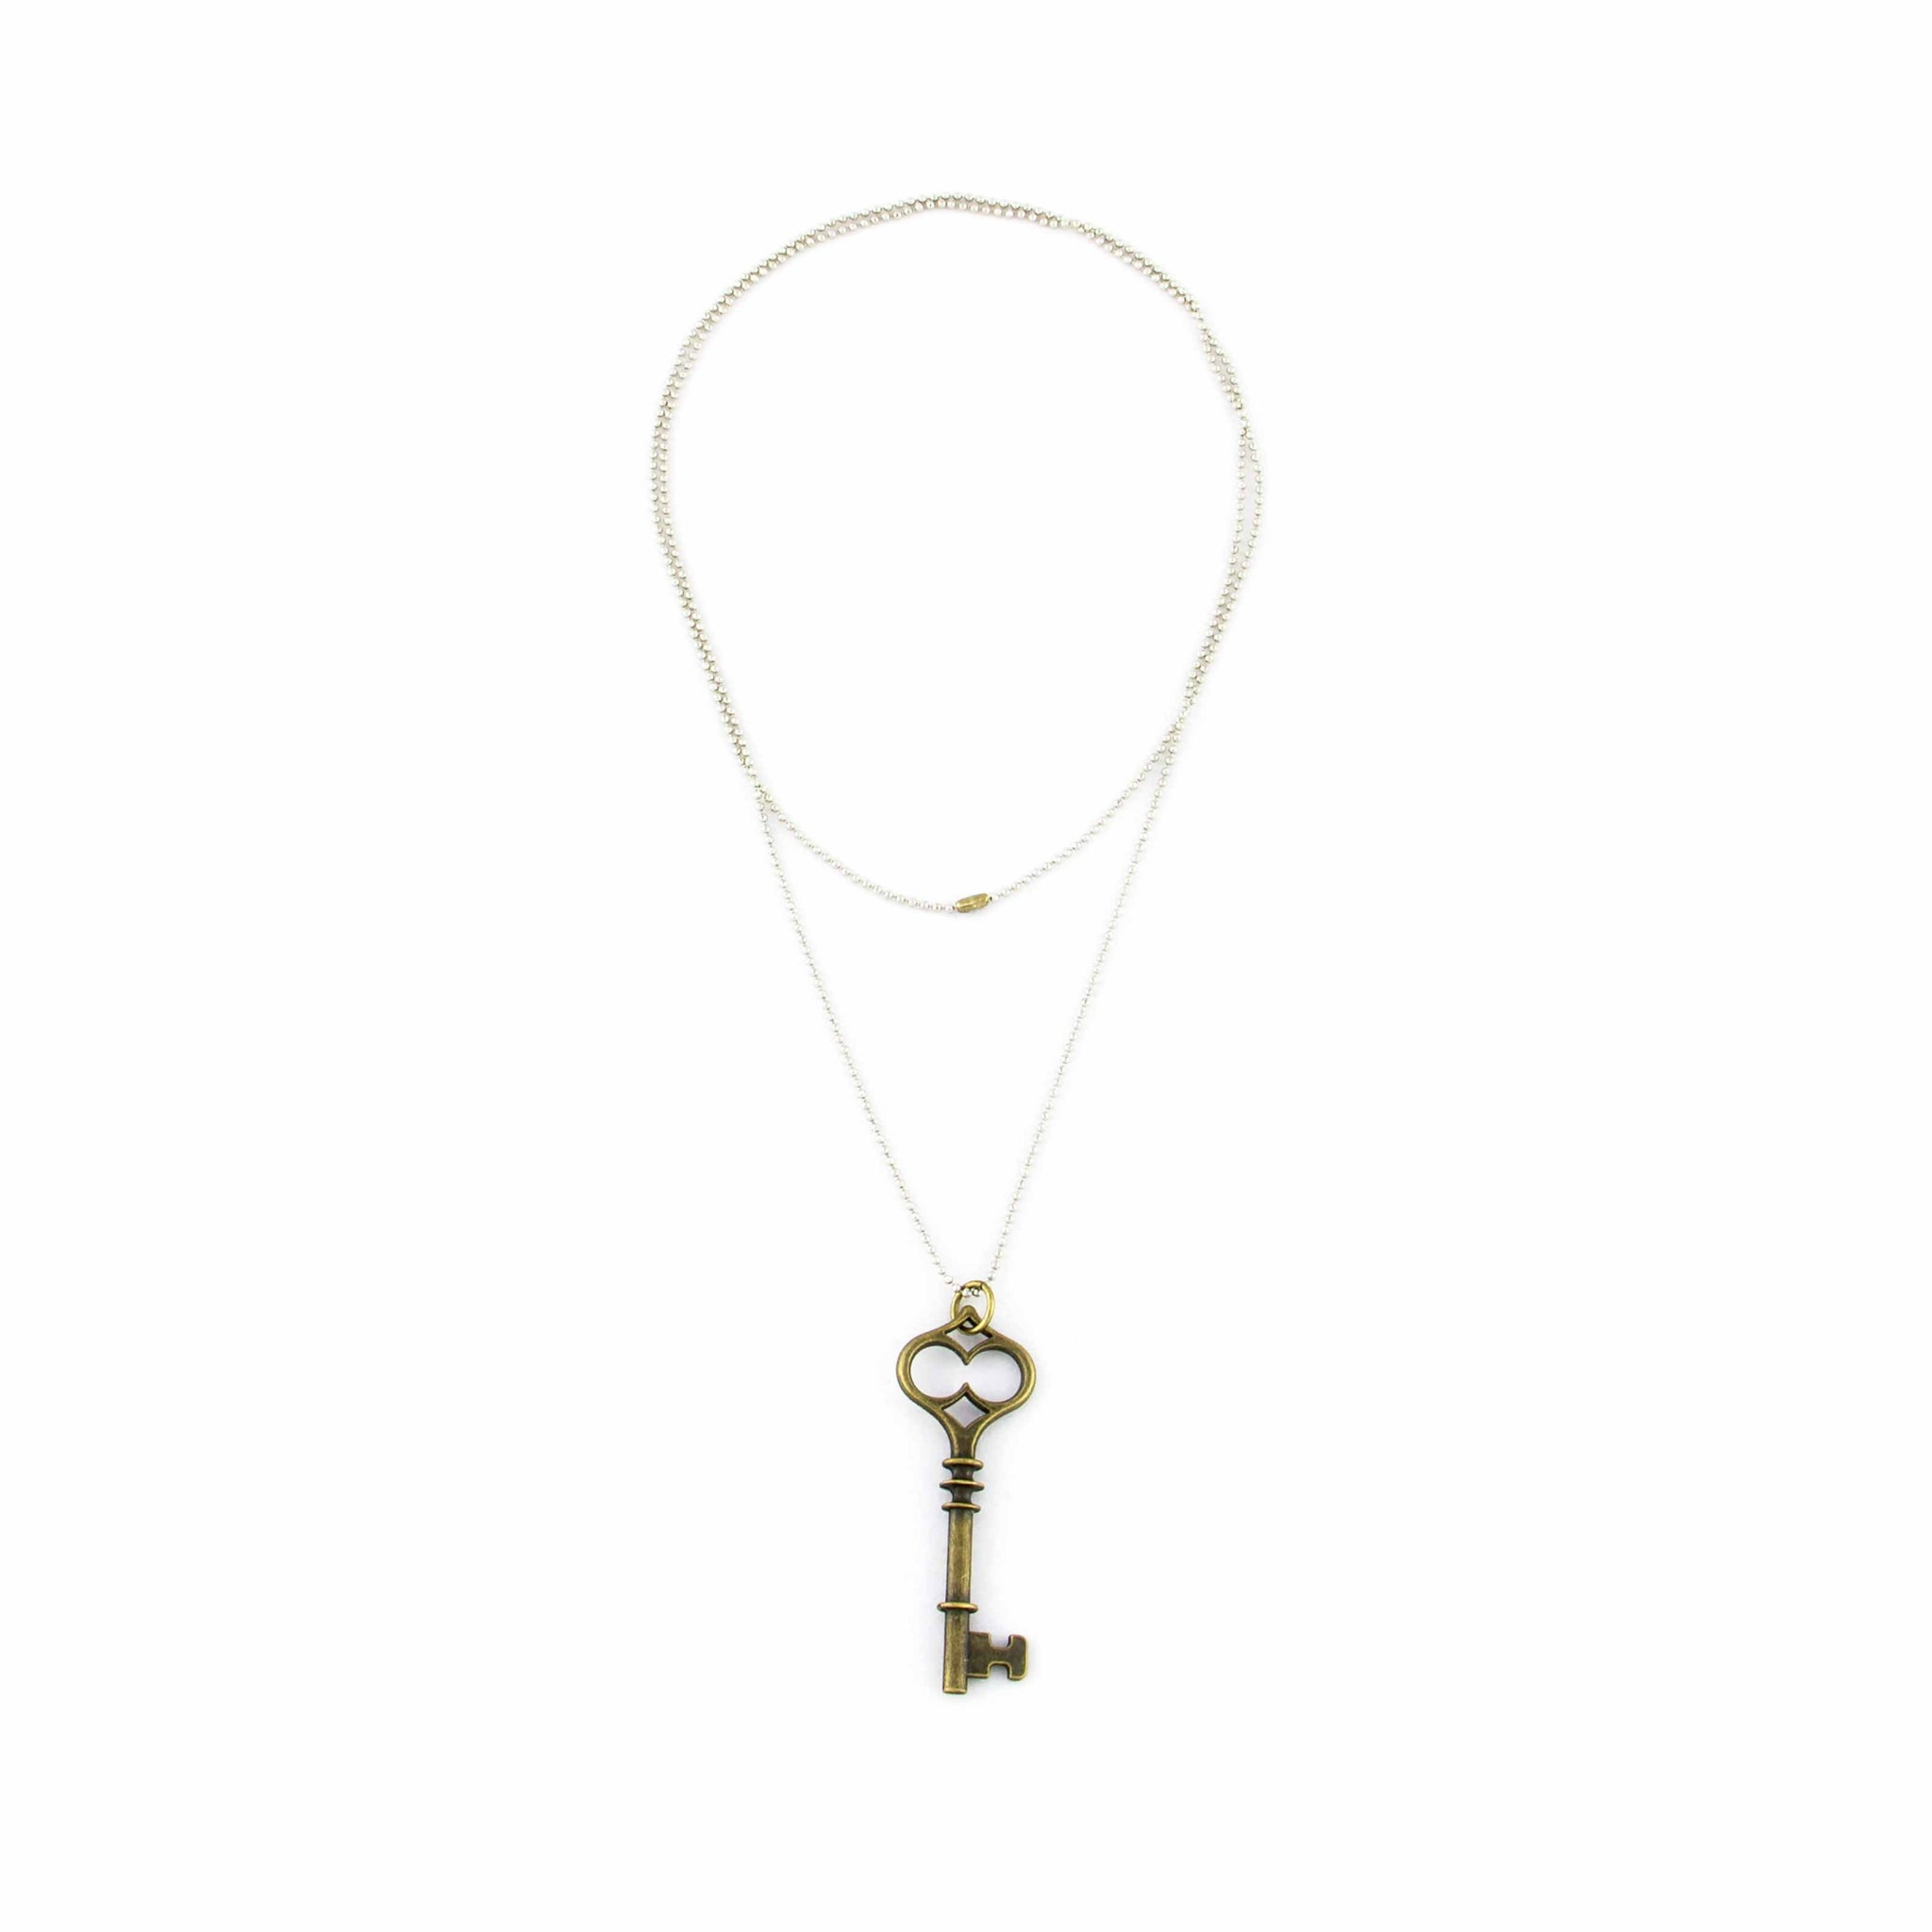 Long Necklace with Key Pendant